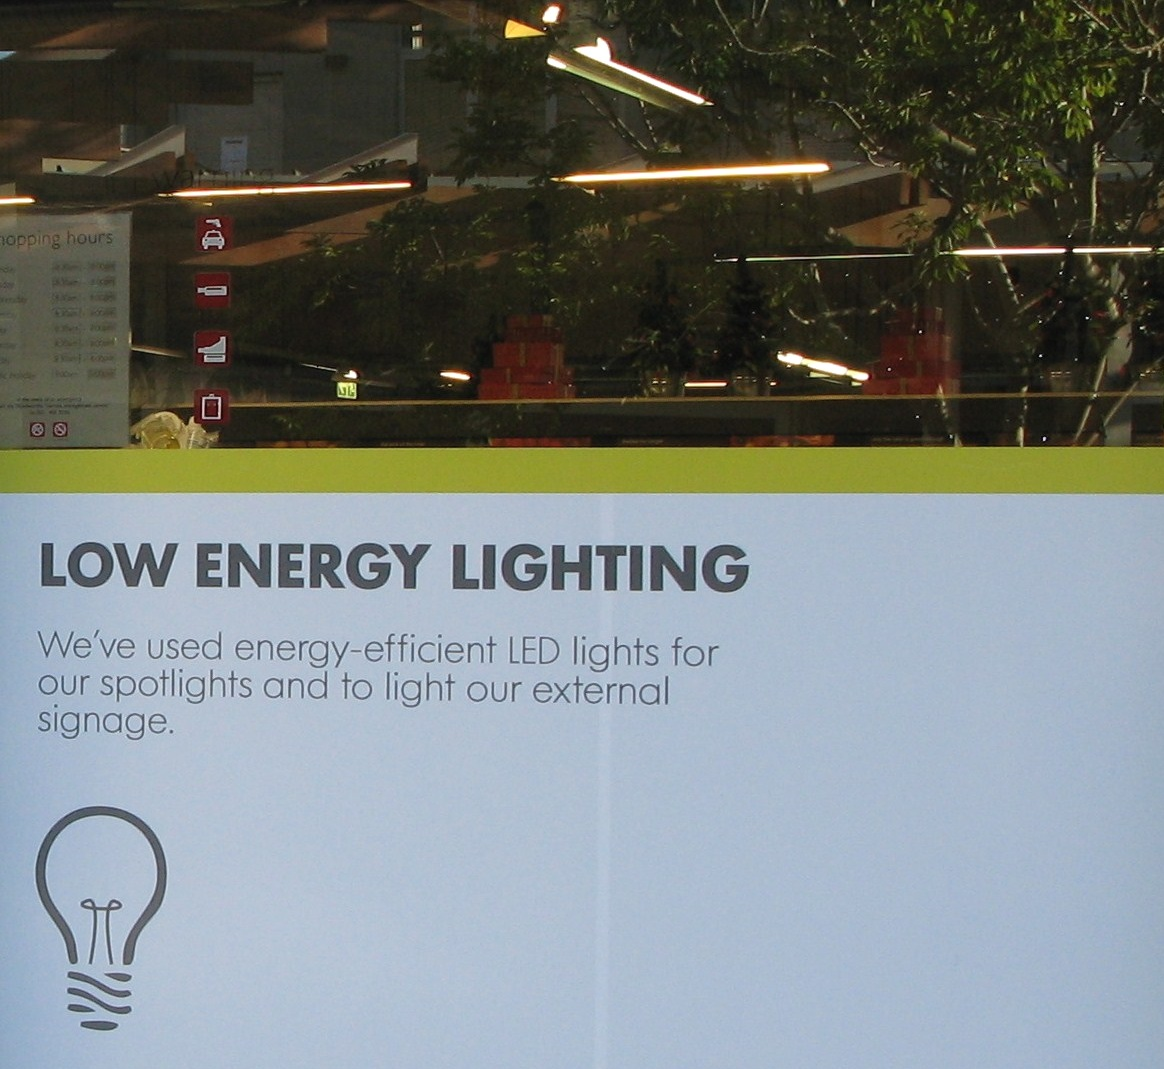 woolworths  customers - low energy lighting